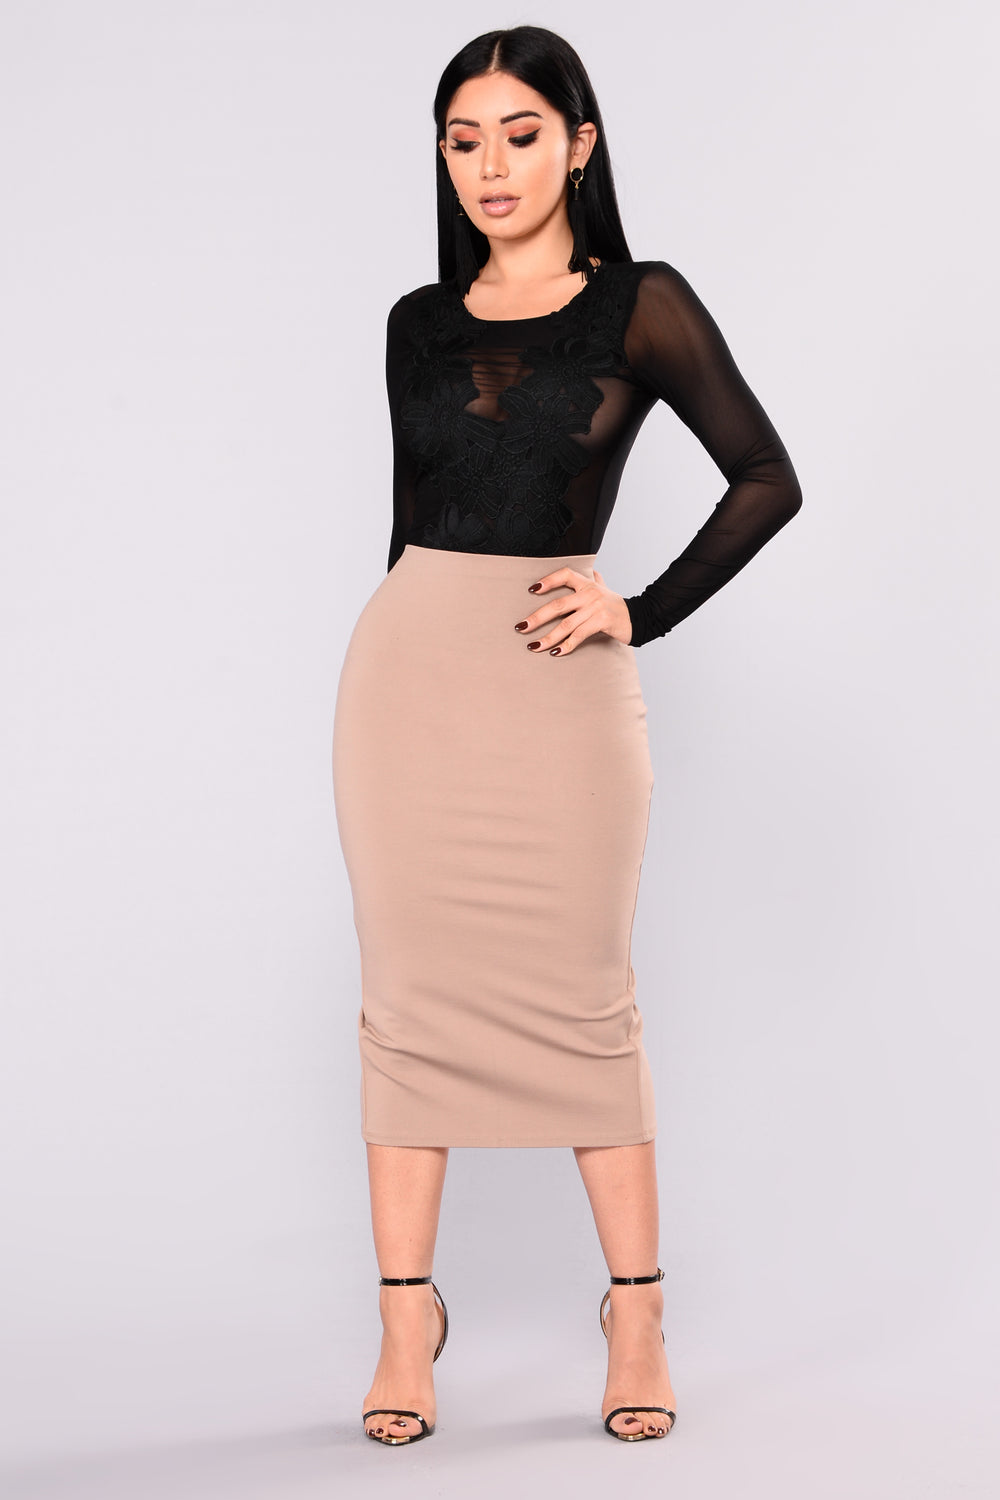 Quick Throw On Midi Skirt - Mocha